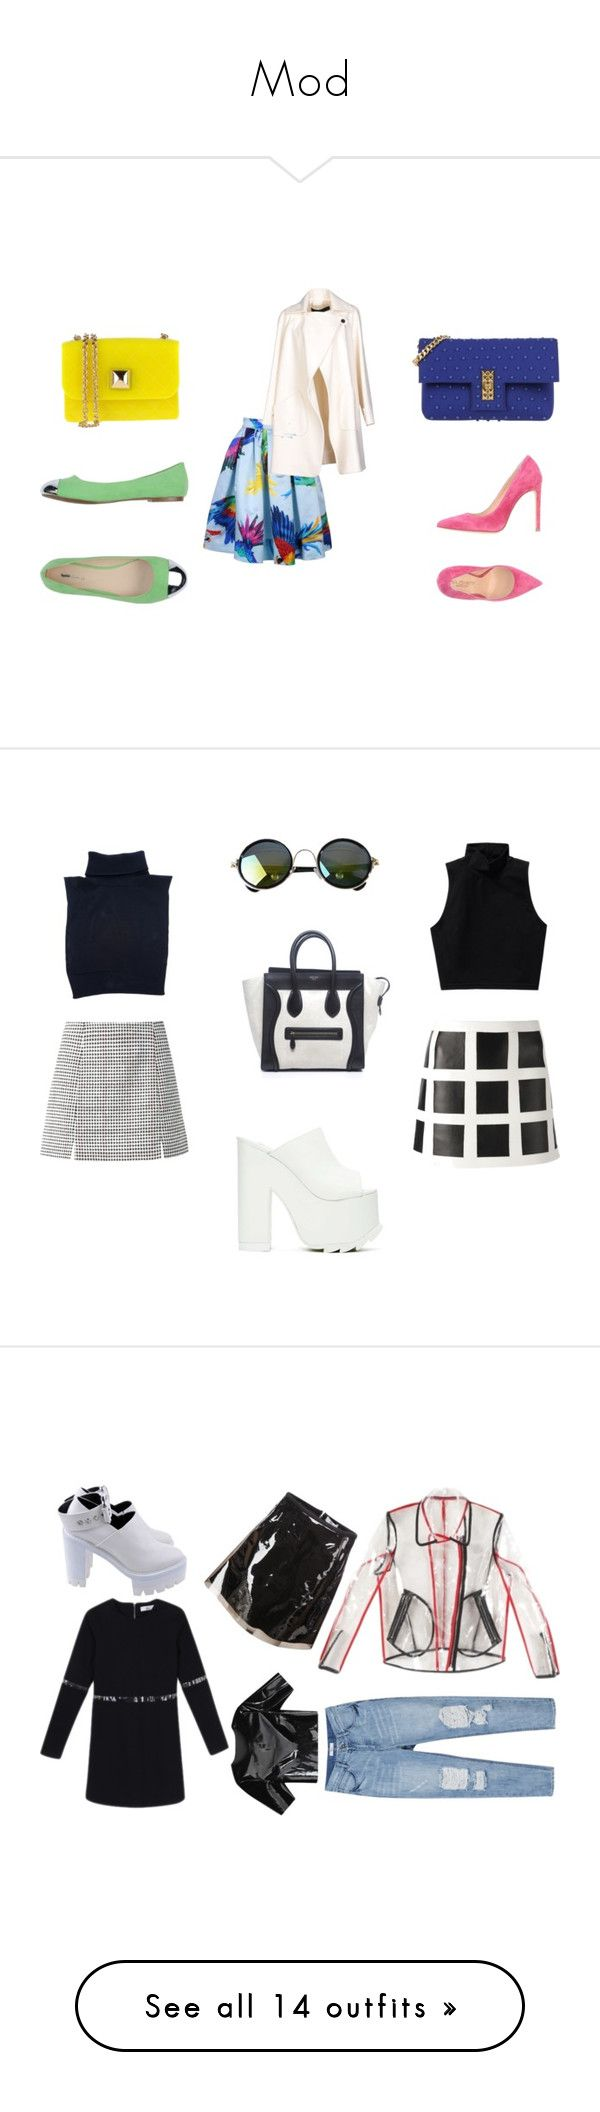 """Mod"" by xxxthebombshellfactoryxxx ❤ liked on Polyvore featuring Daizy Shely, Karl Lagerfeld, Hervê Guyel, Paul & Betty, La Fille Des Fleurs, Cédric Charlier, Talula, Dsquared2, CÉLINE and Y.R.U."